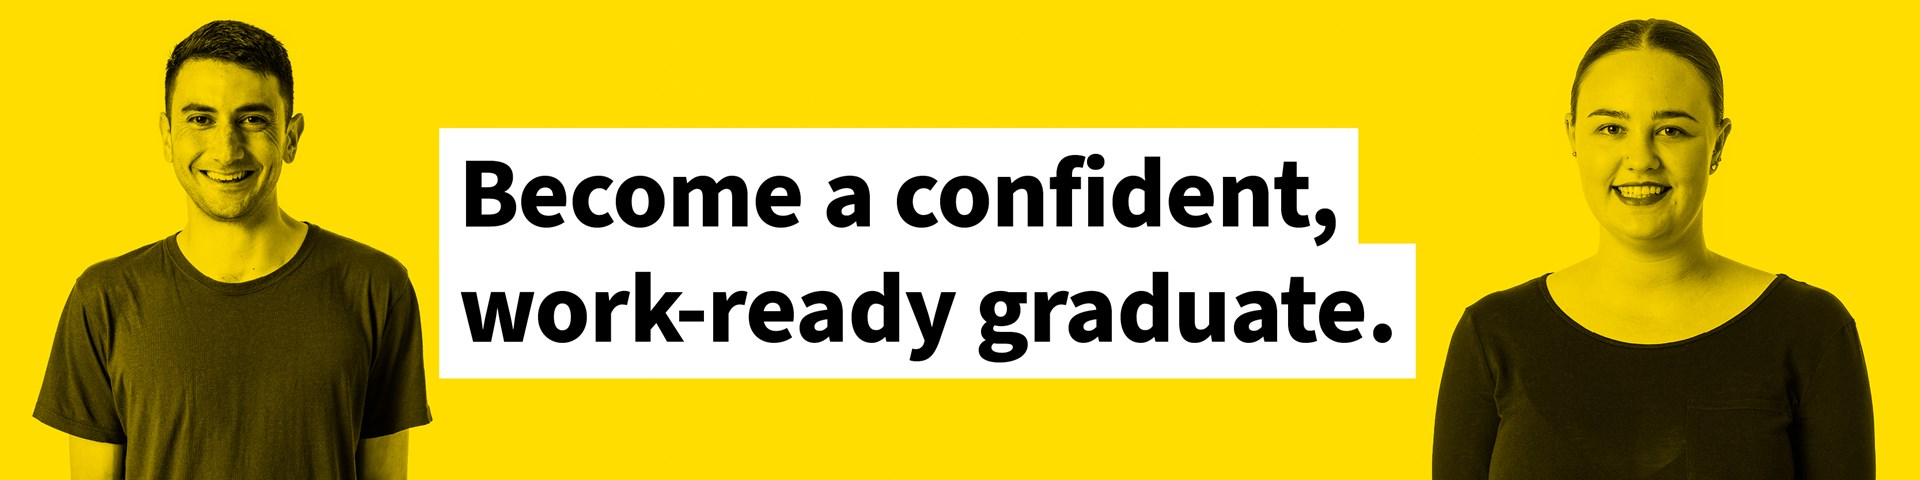 Become a confident, work-ready graduate